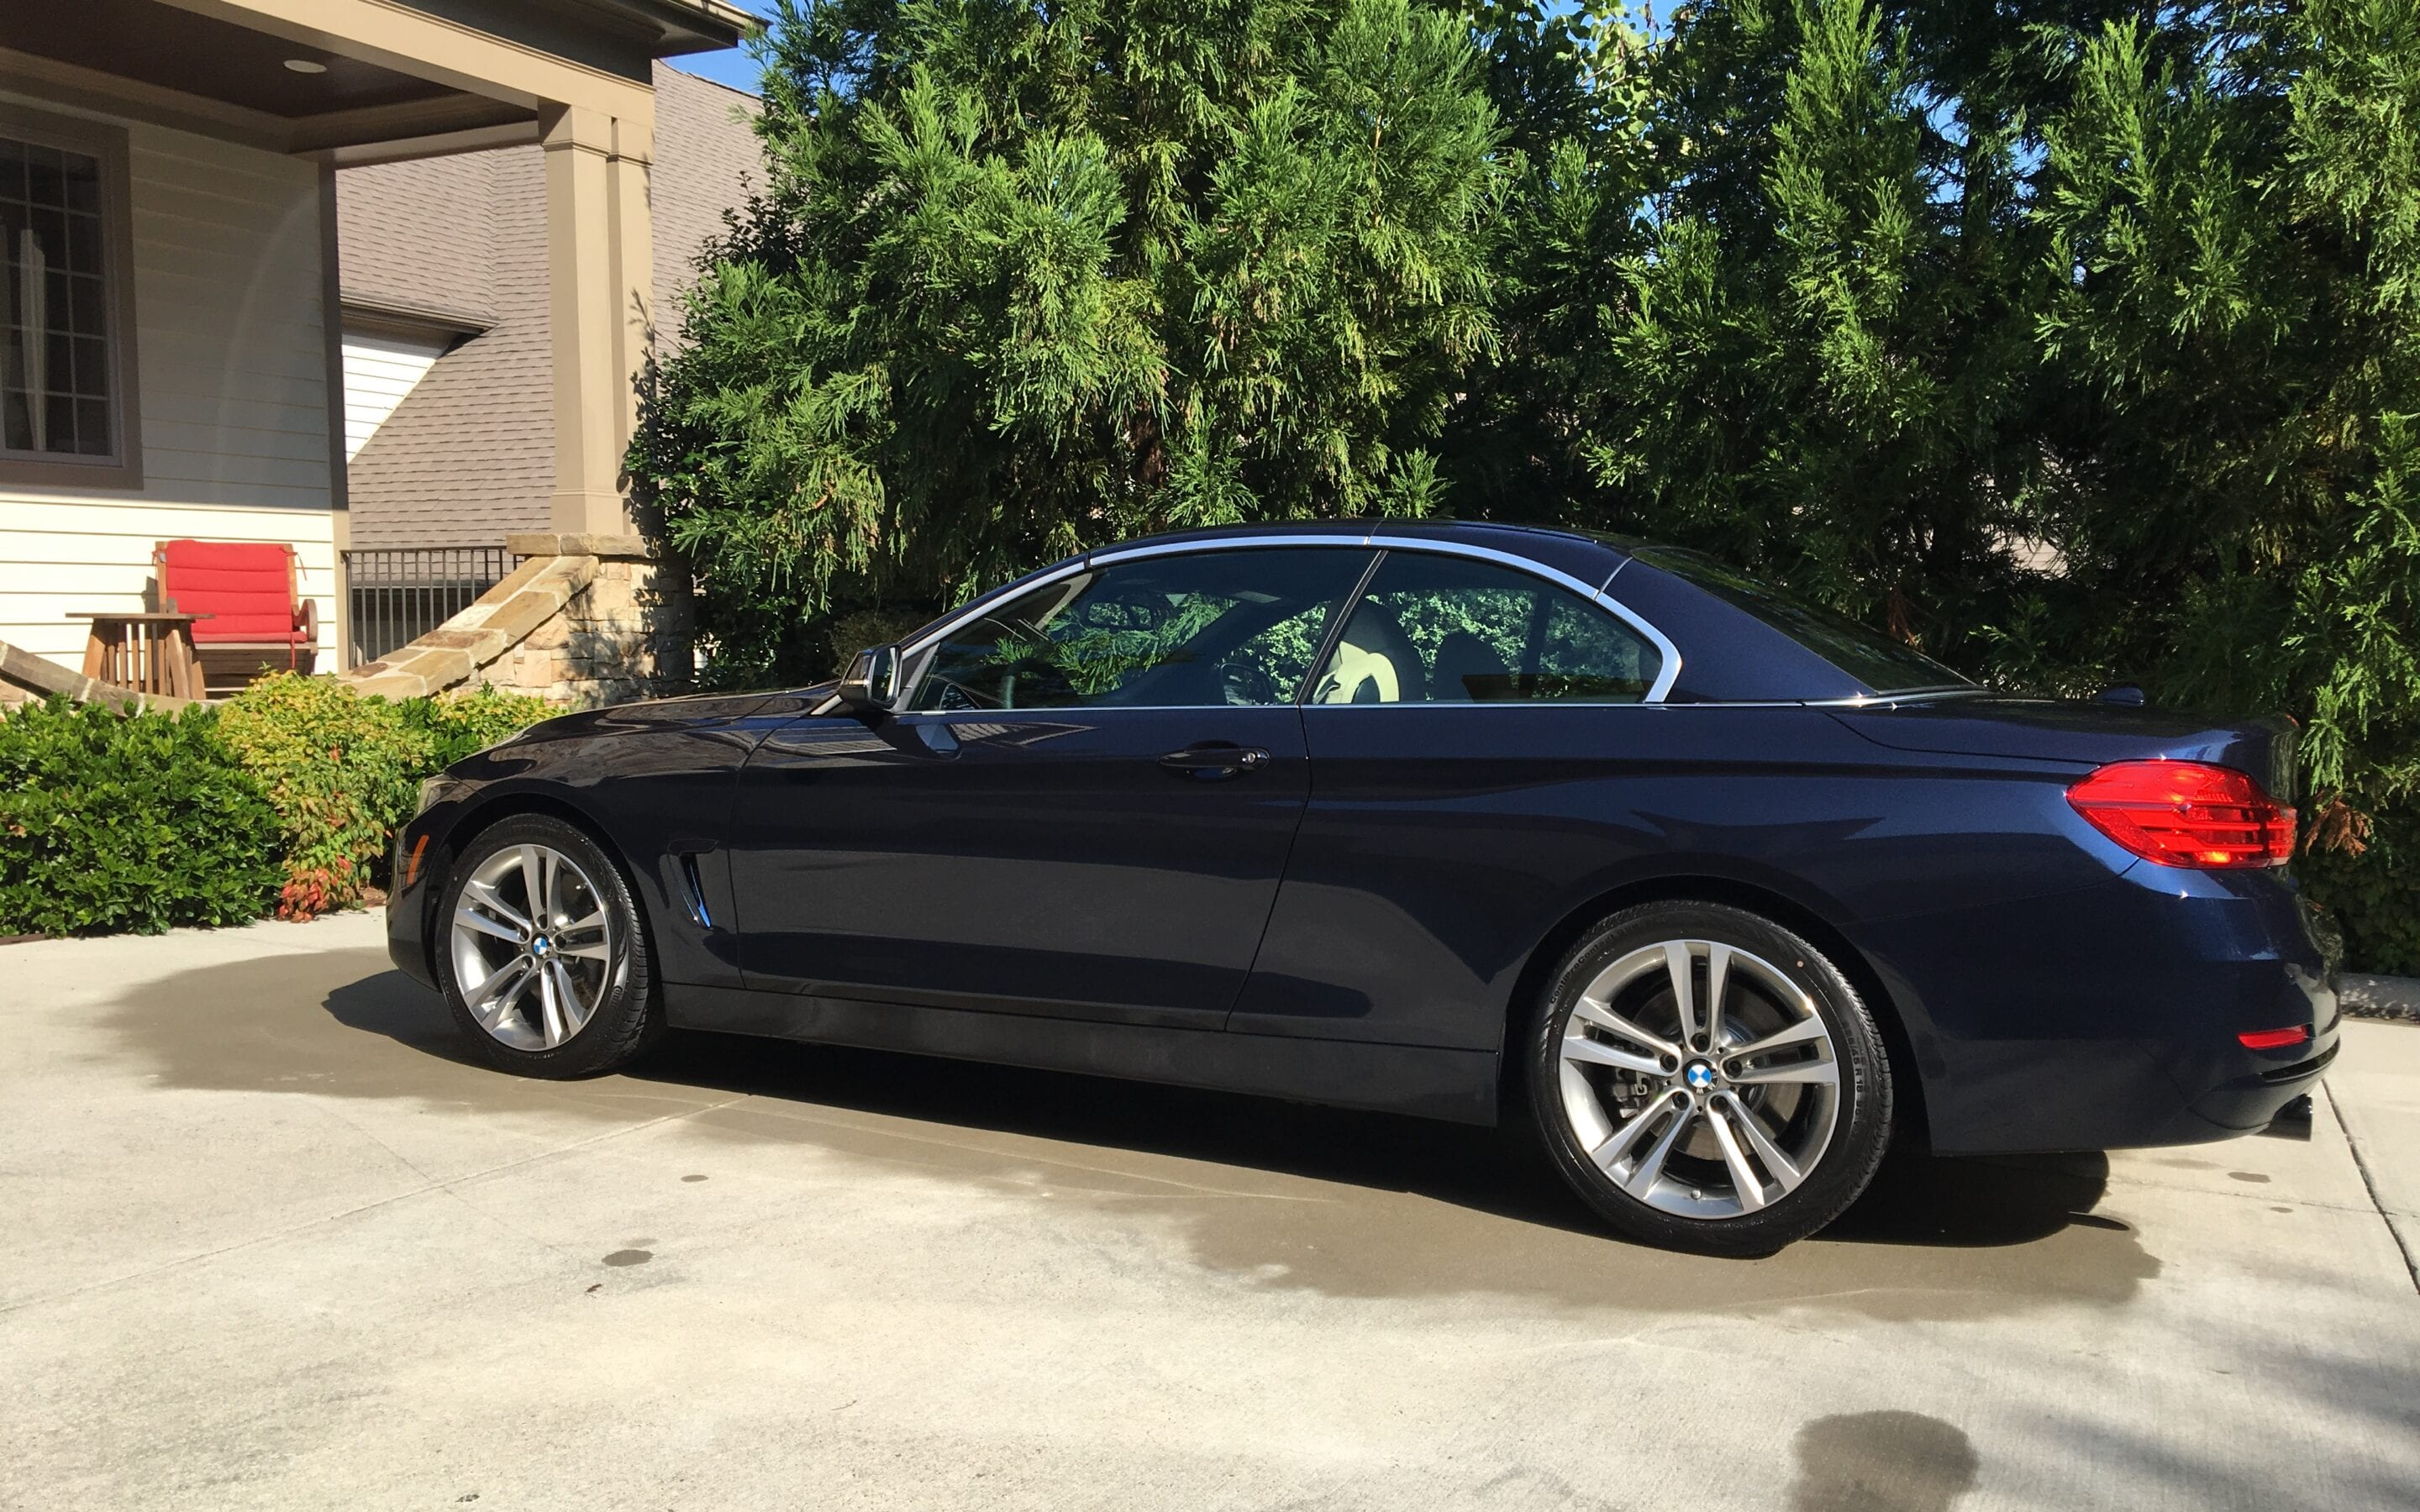 Photos of finished 2014 BMW 325